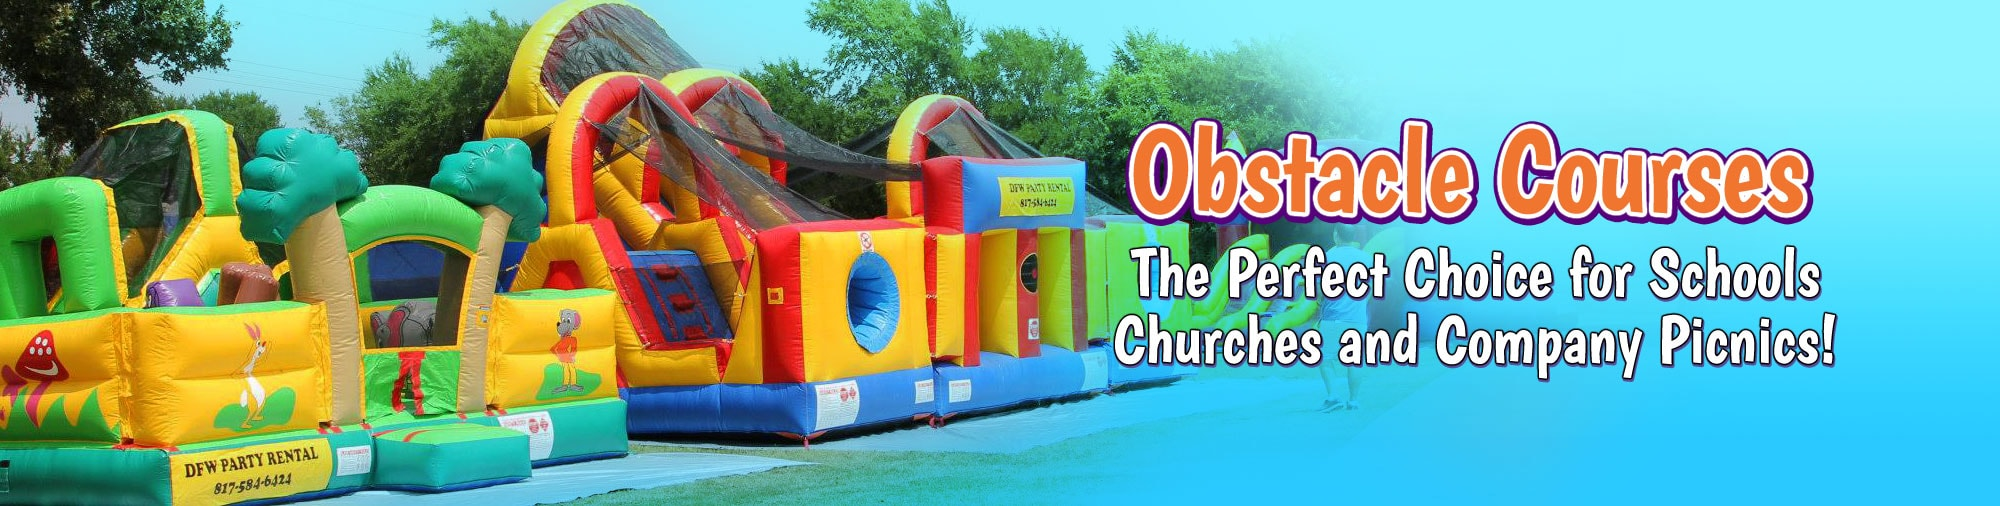 Obstacle Course Rental Slider